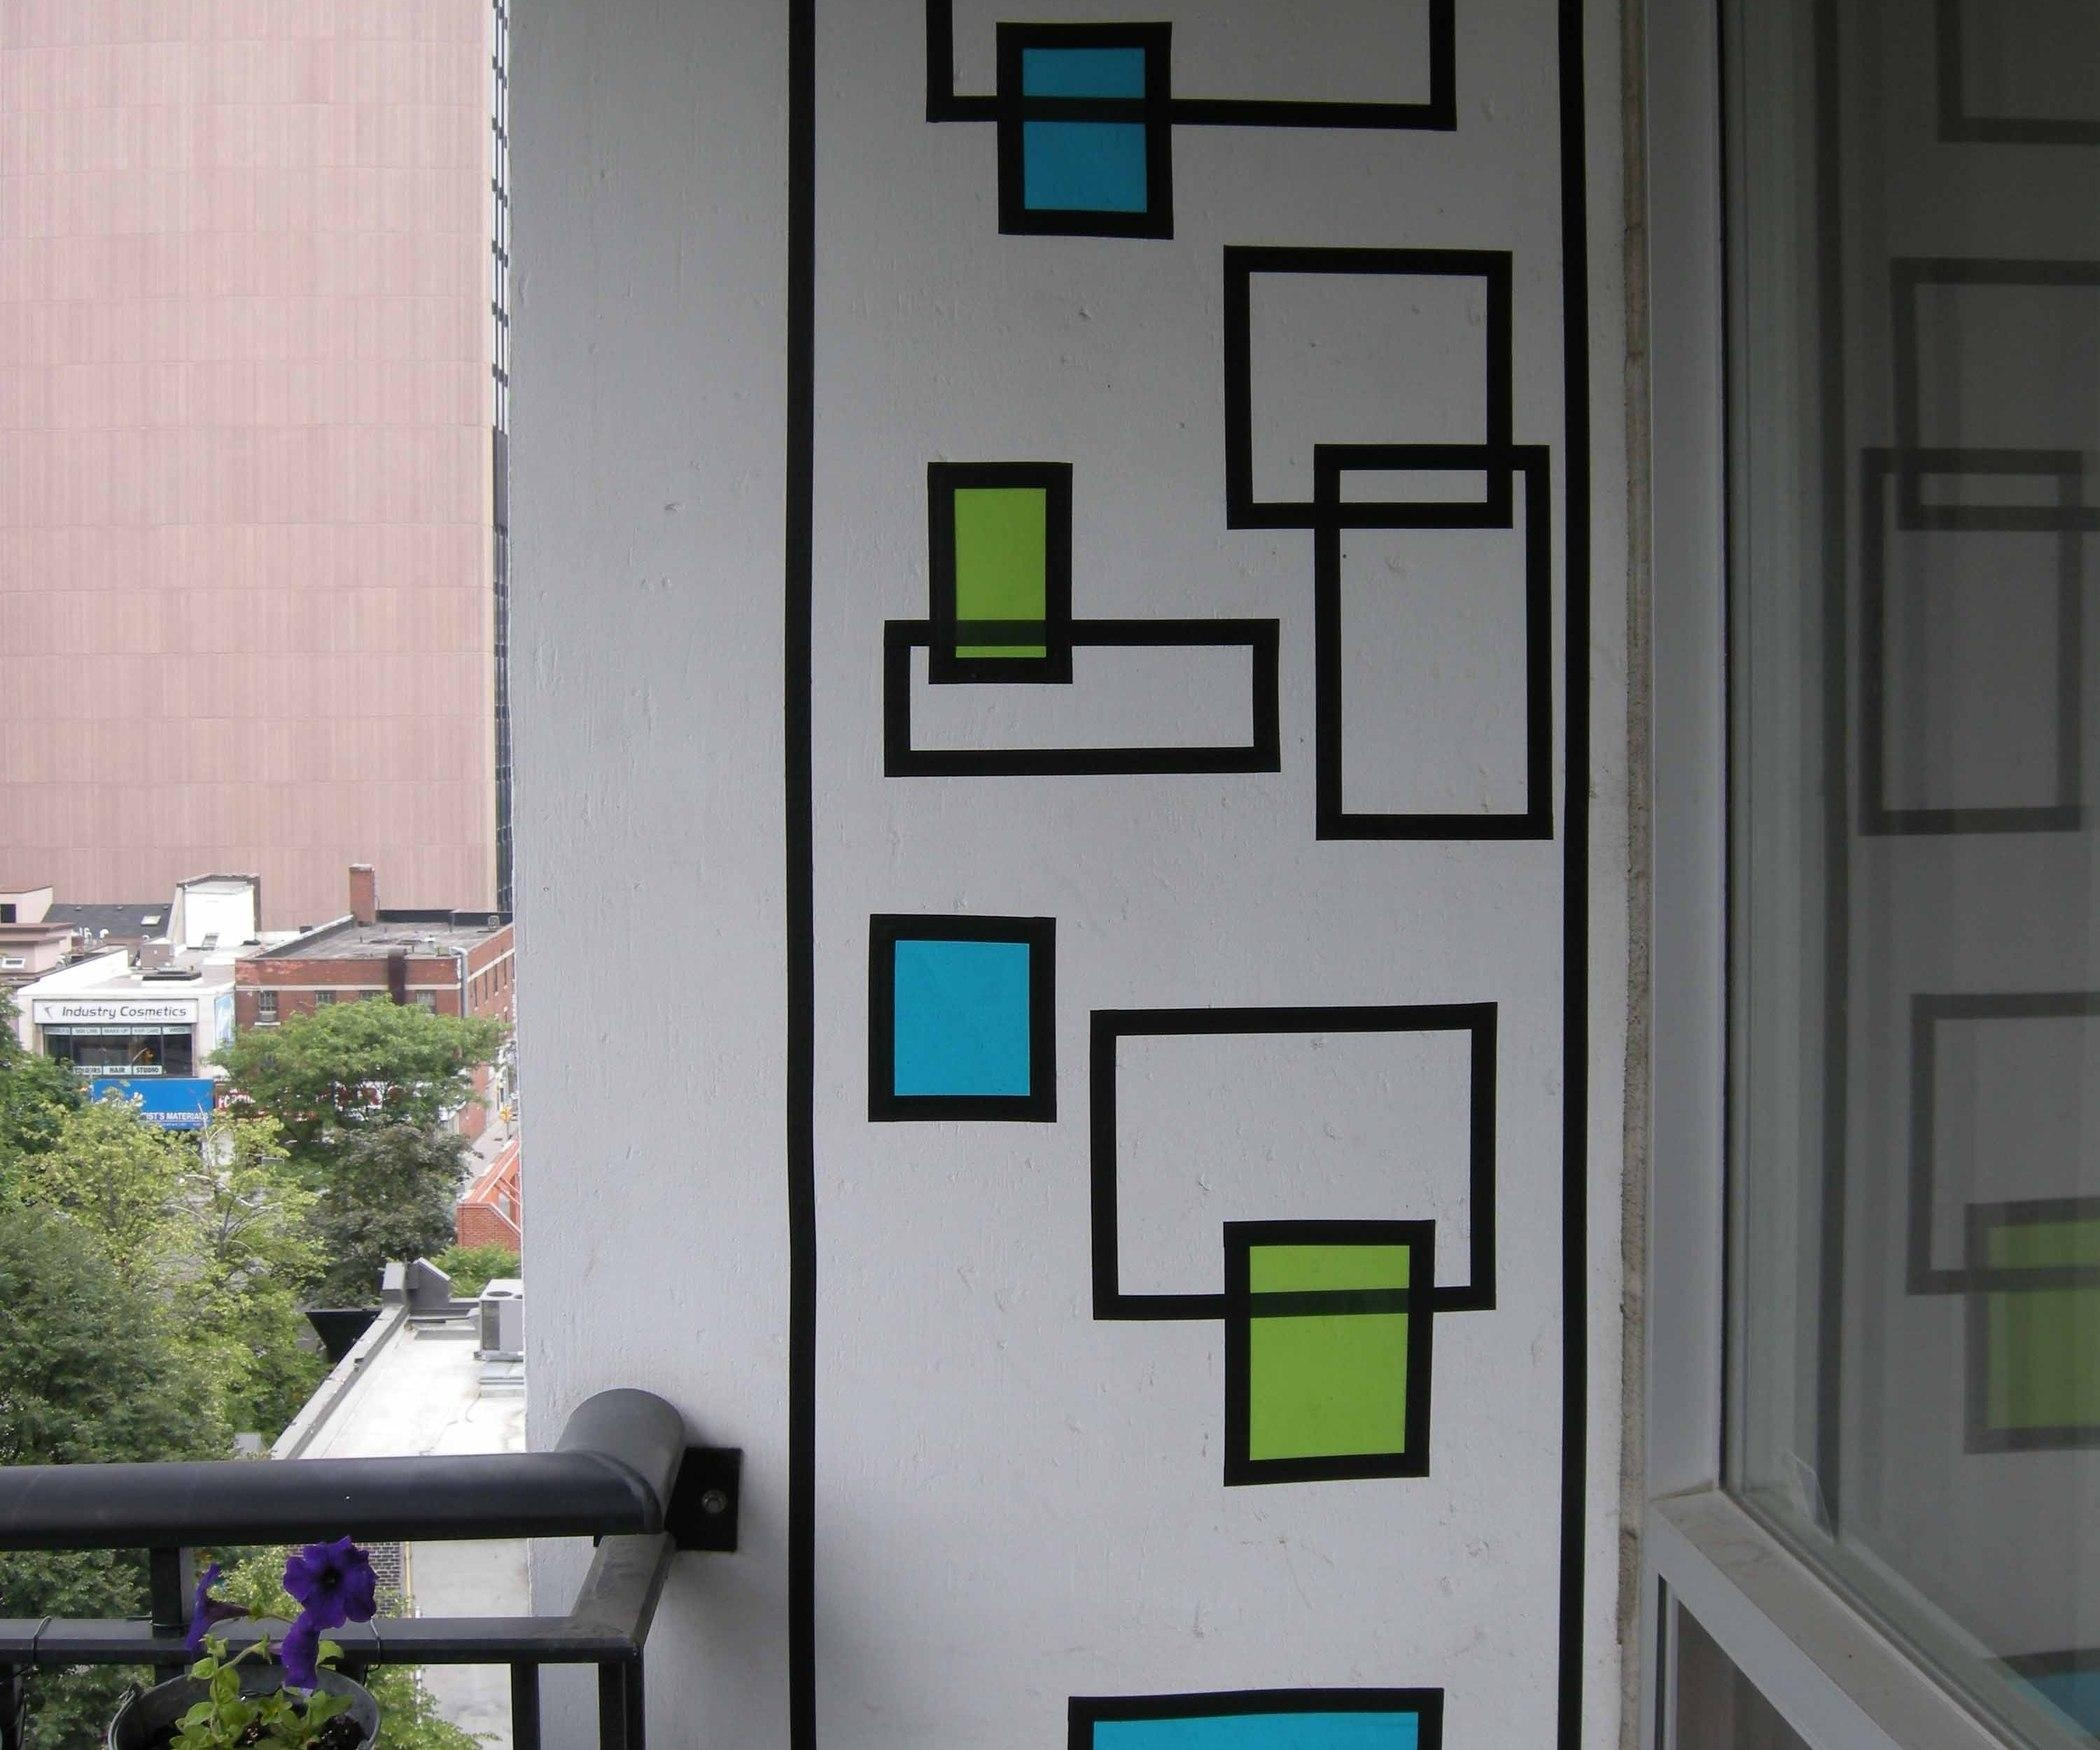 How To Create Wall Art With Electrical Tape: 6 Steps (With Pictures) Pertaining To Duct Tape Wall Art (Photo 11 of 20)